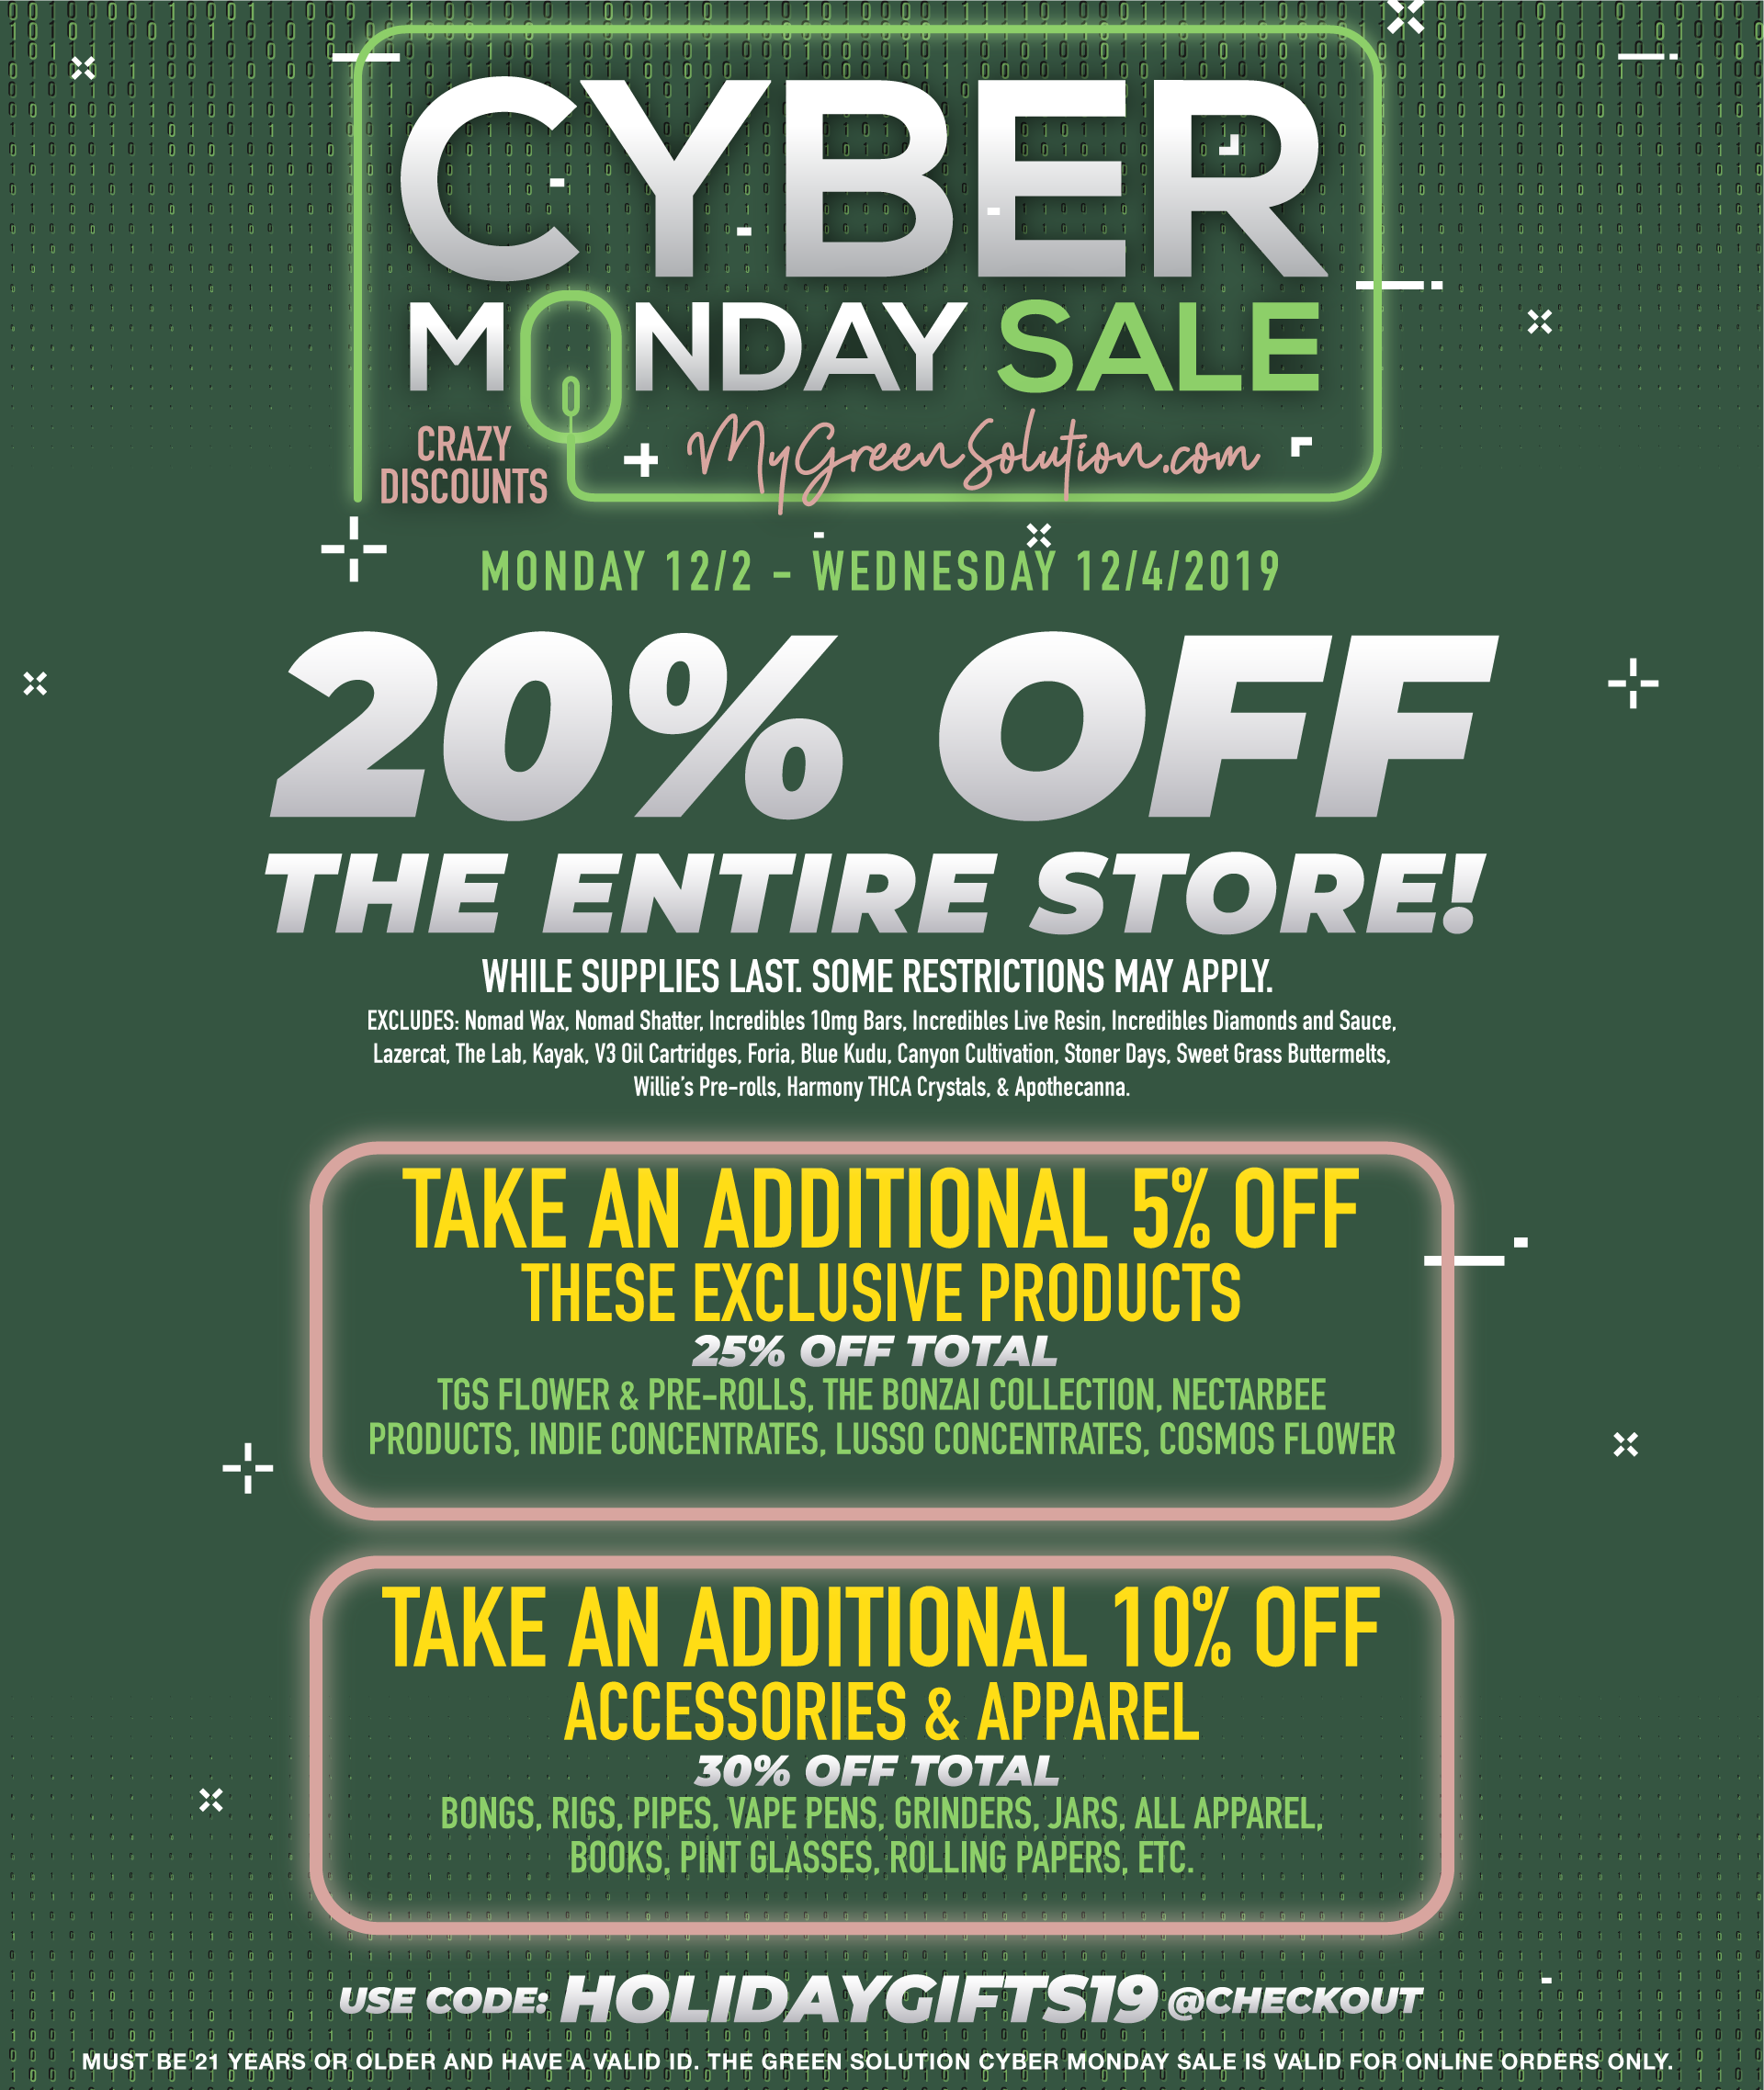 Cyber Monday Sale at The Green Solution